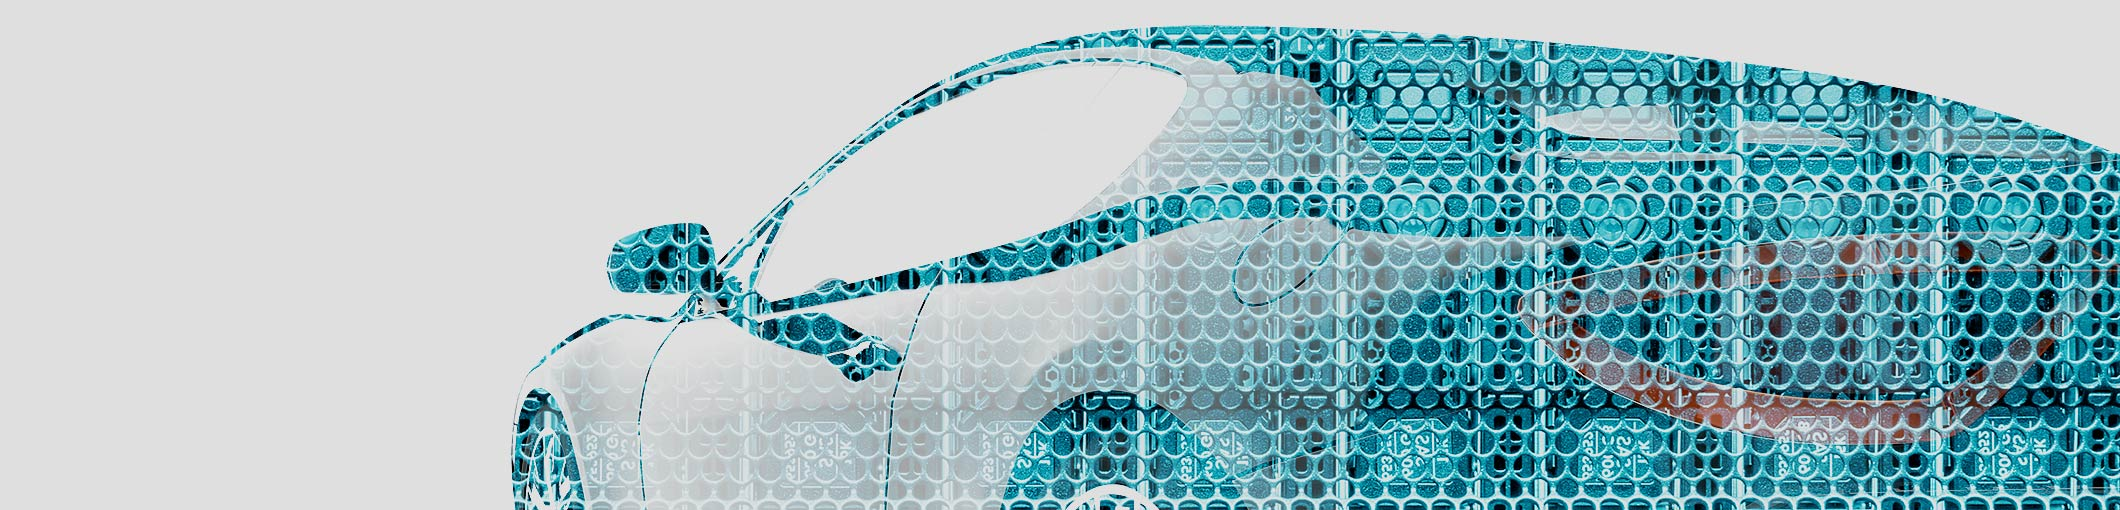 Centralized automotive security views data from both ends